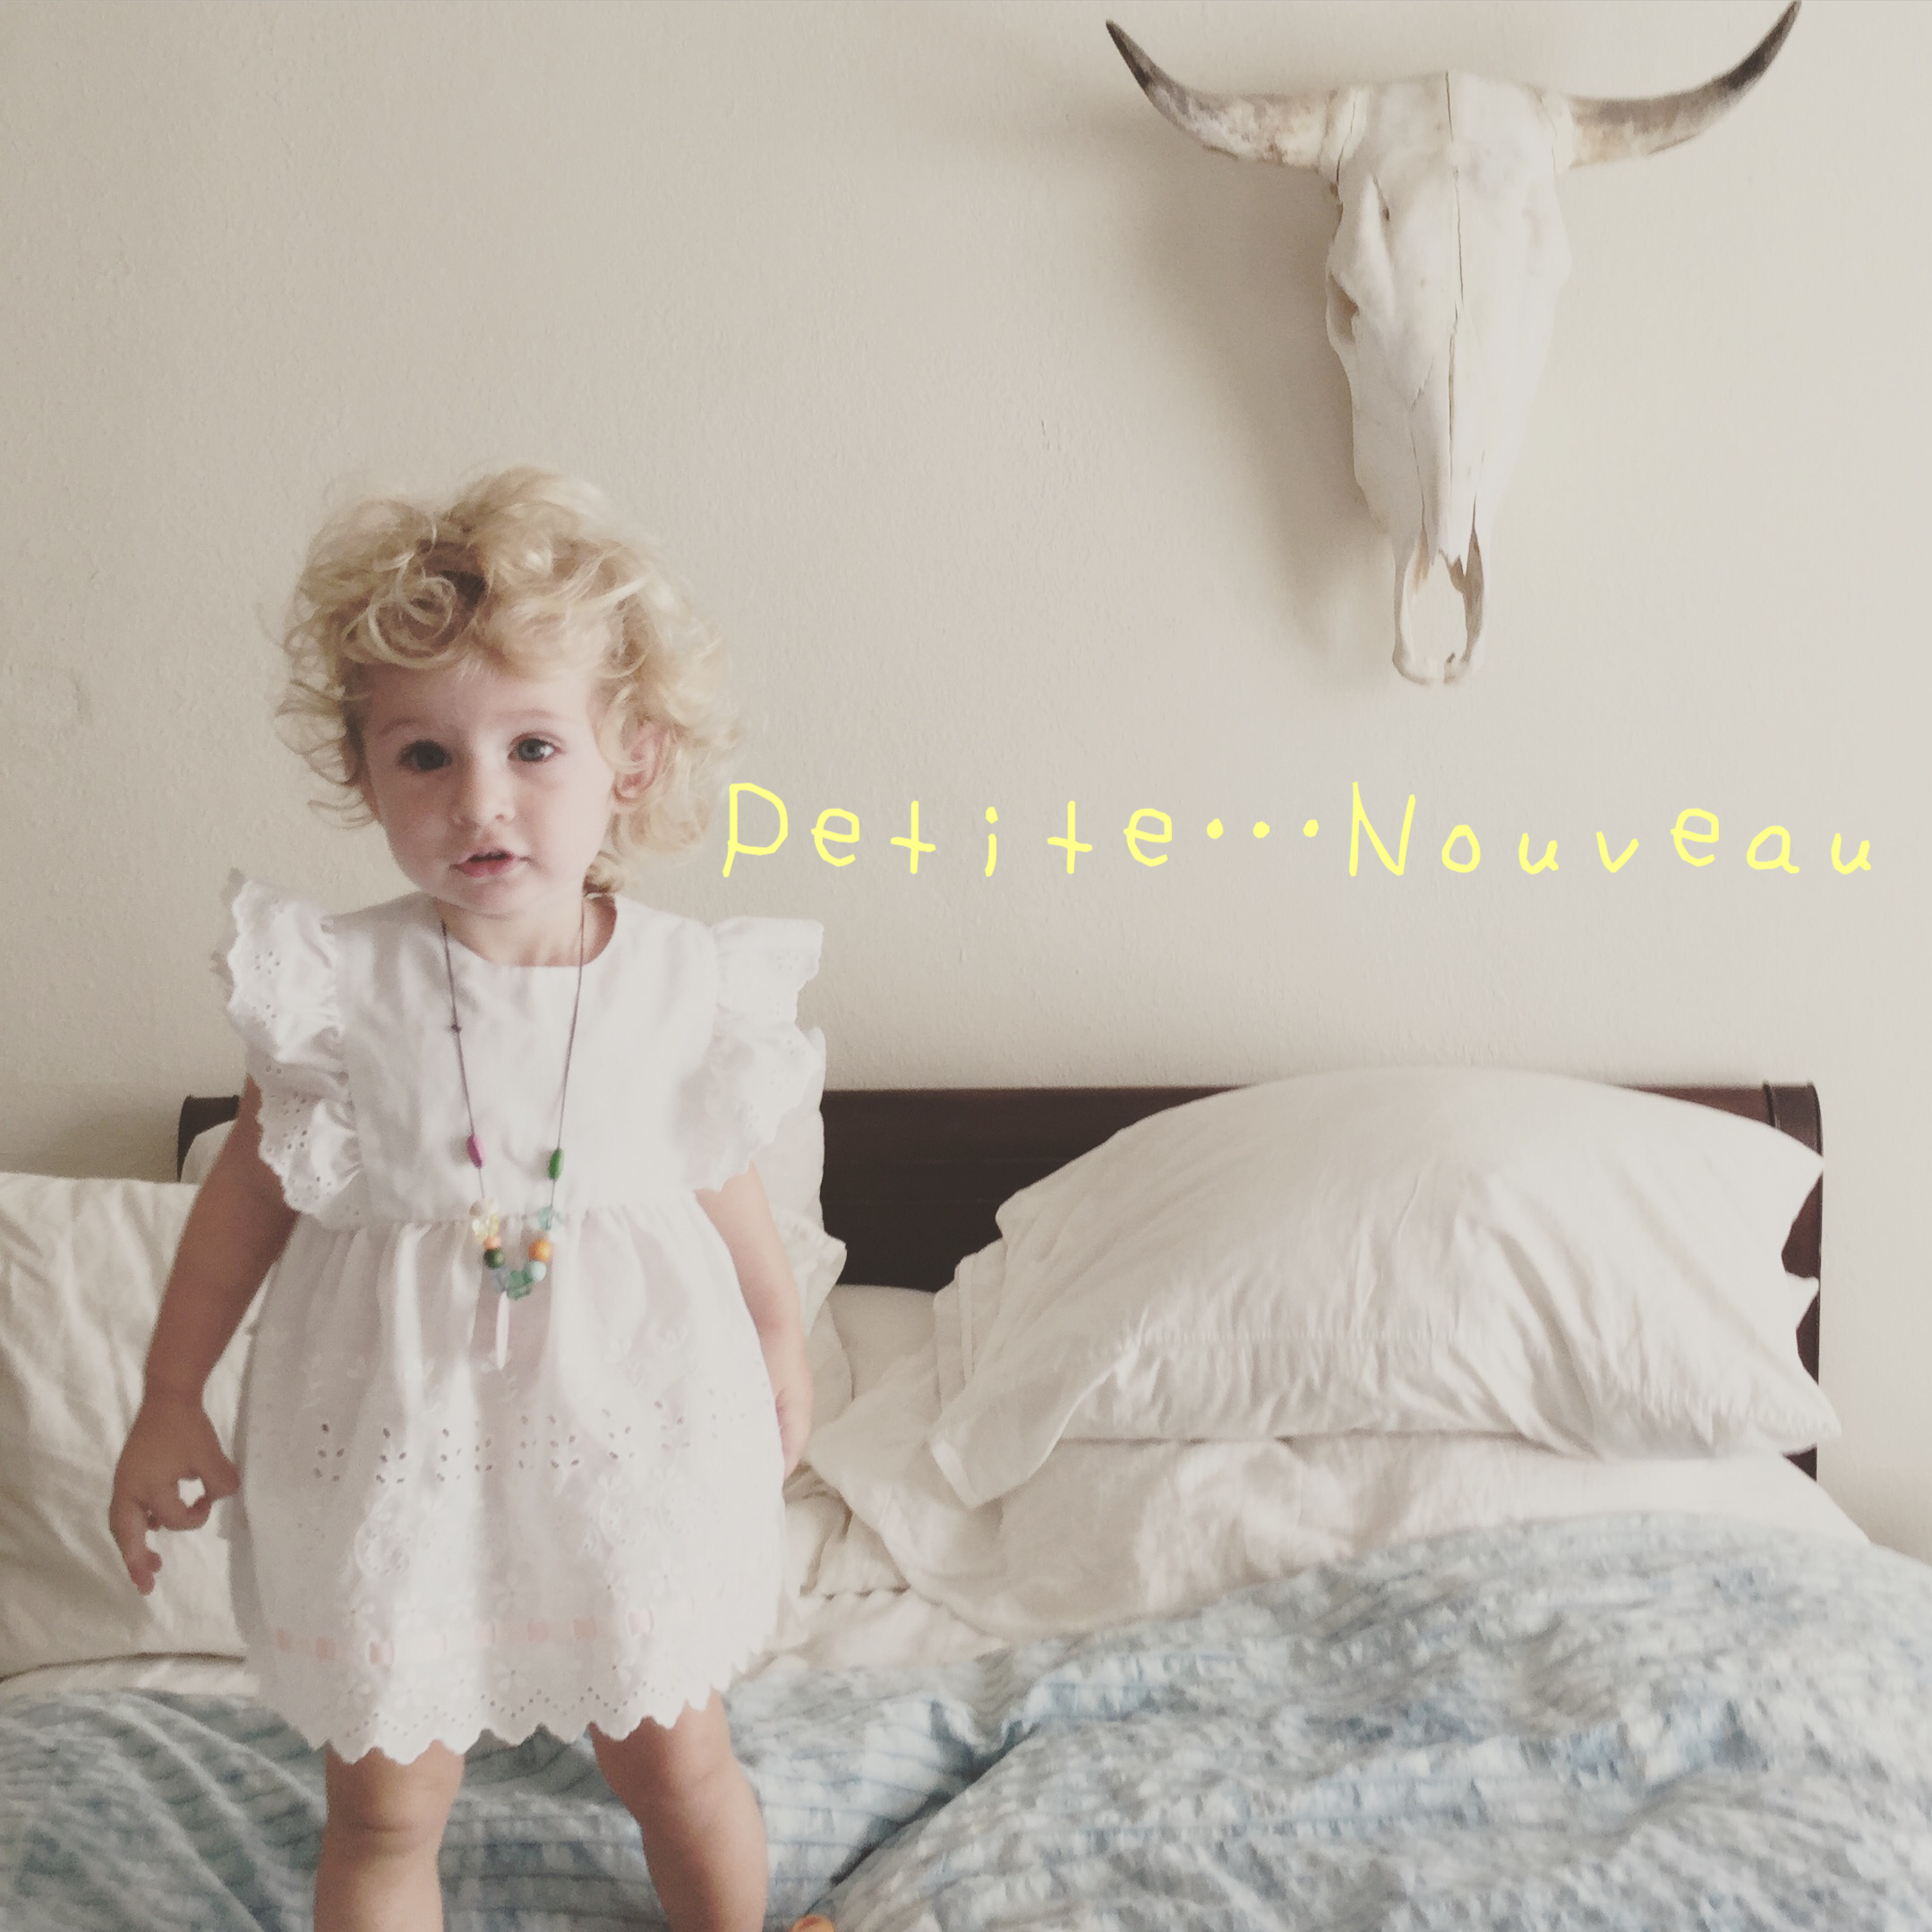 Little Edie in  Petite Nouveau. SHOP VINTAGE!  New pieces added weekly.